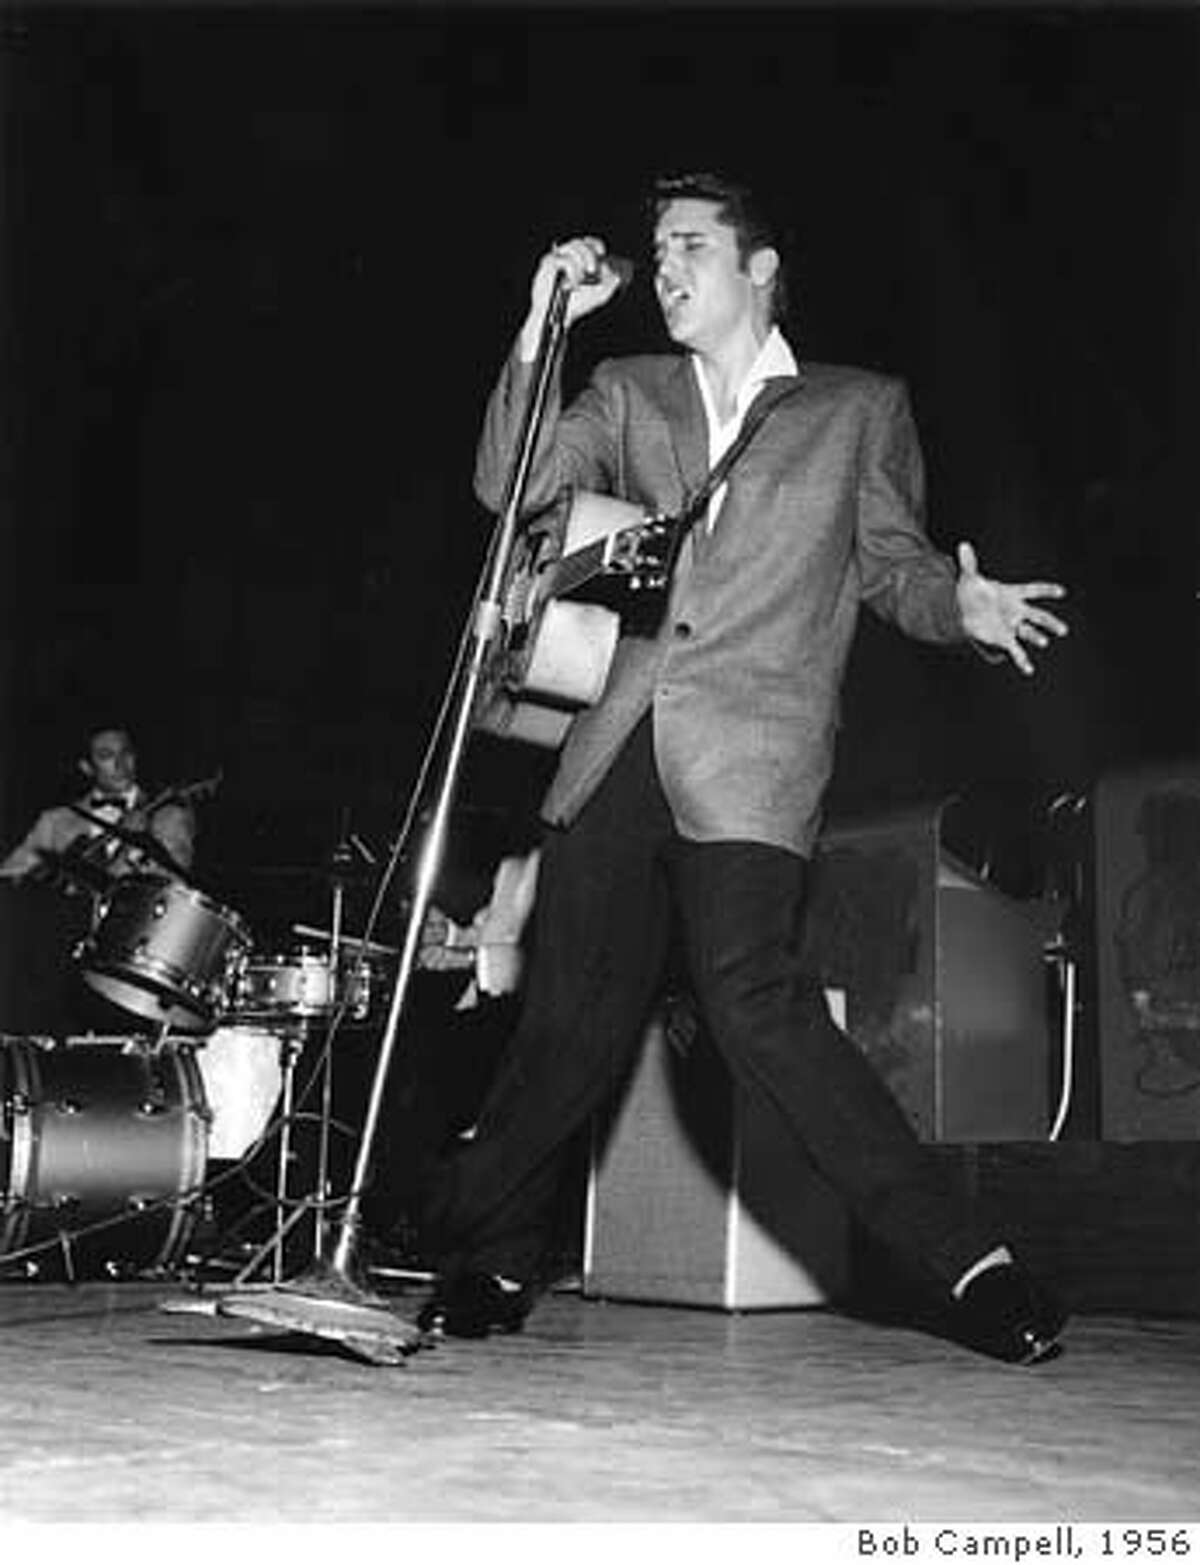 ELVIS 1/B/24SEP97/DD/BC--Elvis Presley in Oakland in 1956. CHRONICLE PHOTO BY BOB CAMPBELL Ran on: 01-09-2005 Elvis entertains his fans during a 1956 show in Oakland.